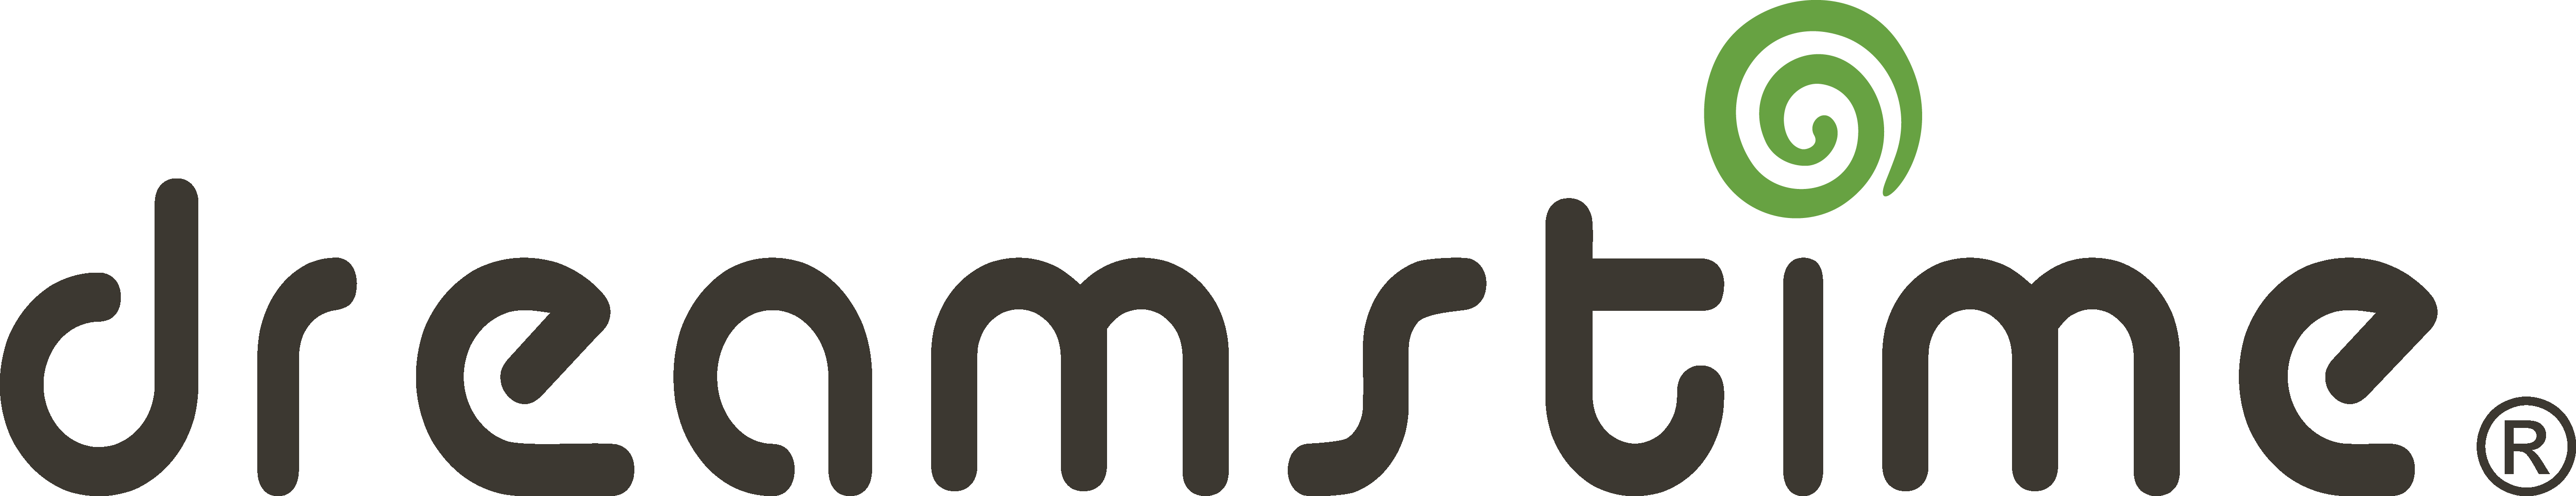 Image result for dreamstime logo